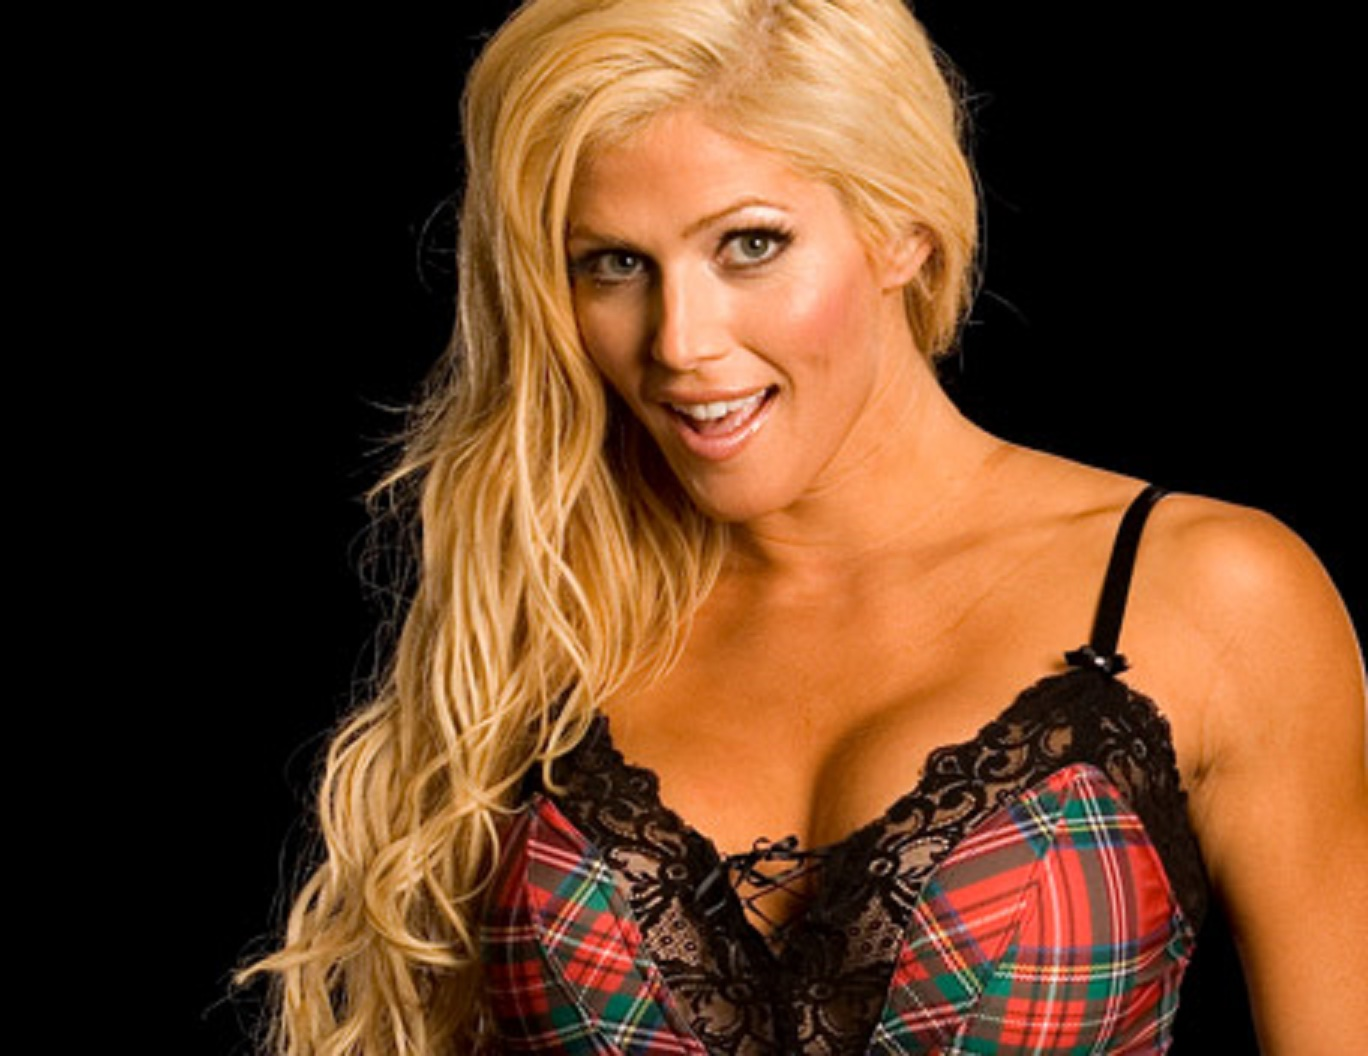 Torrie Wilson nude, topless pictures, playboy photos, sex Pictures of tori wilson